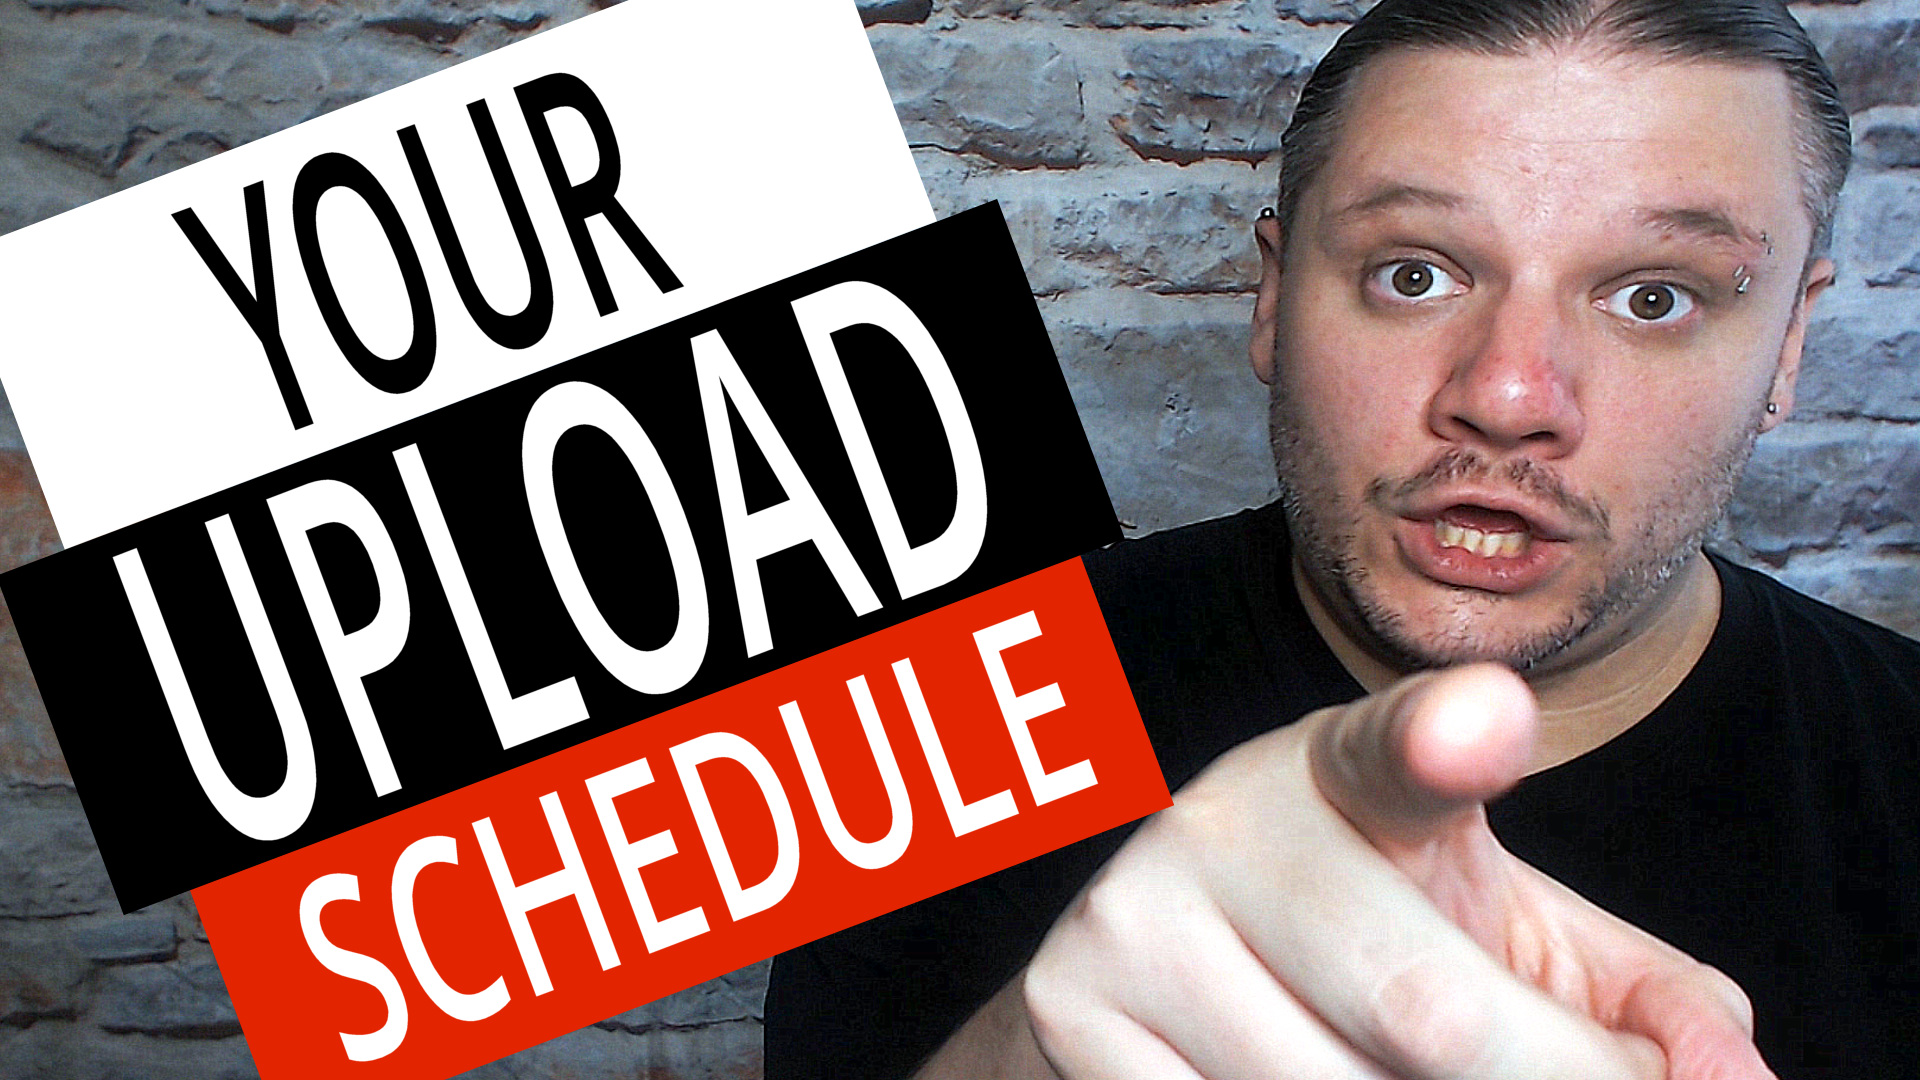 alan spicer,alanspicer,youtube tips,youtube tricks,asyt,youtube tips 2018,How To Create A YouTube Upload Schedule,YouTube Upload Schedule,best youtube upload schedule,upload video,youtube schedule,schedule videos,how often should i upload videos,how often should you post on youtube,youtube upload schedule,schedule youtube videos,how often should i upload videos on youtube,youtube how often upload,schedule youtube,schedule upload